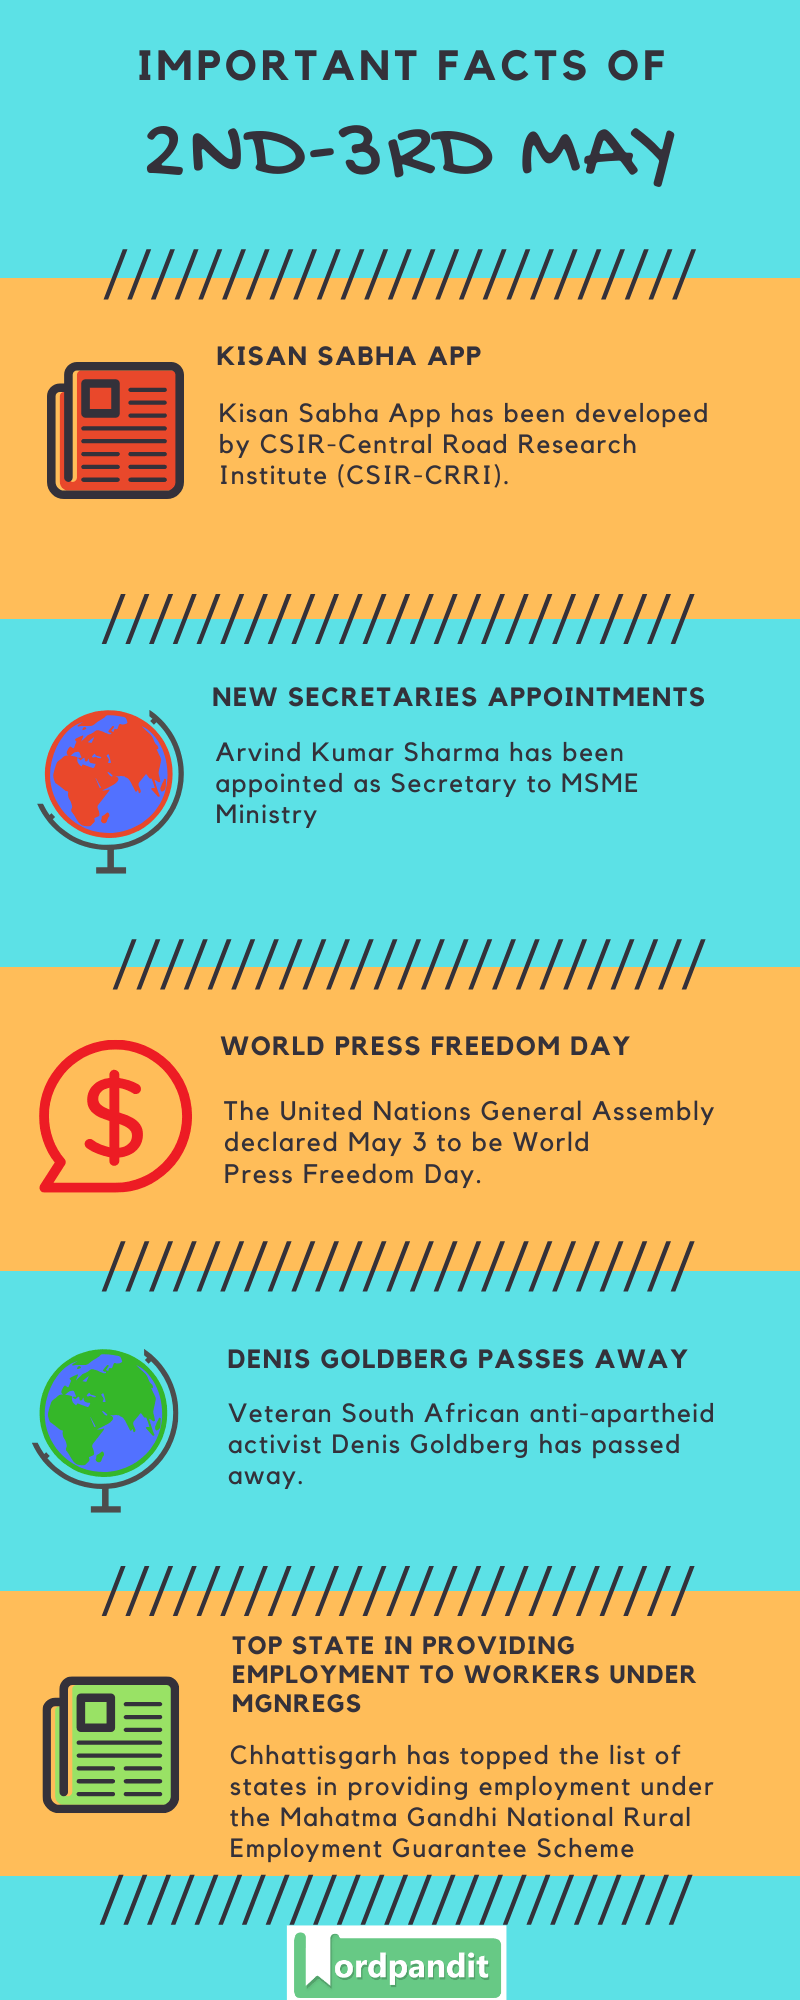 Daily Current Affairs 2-3 May 2020 Current Affairs Quiz 2-3 May 2020 Current Affairs Infographic